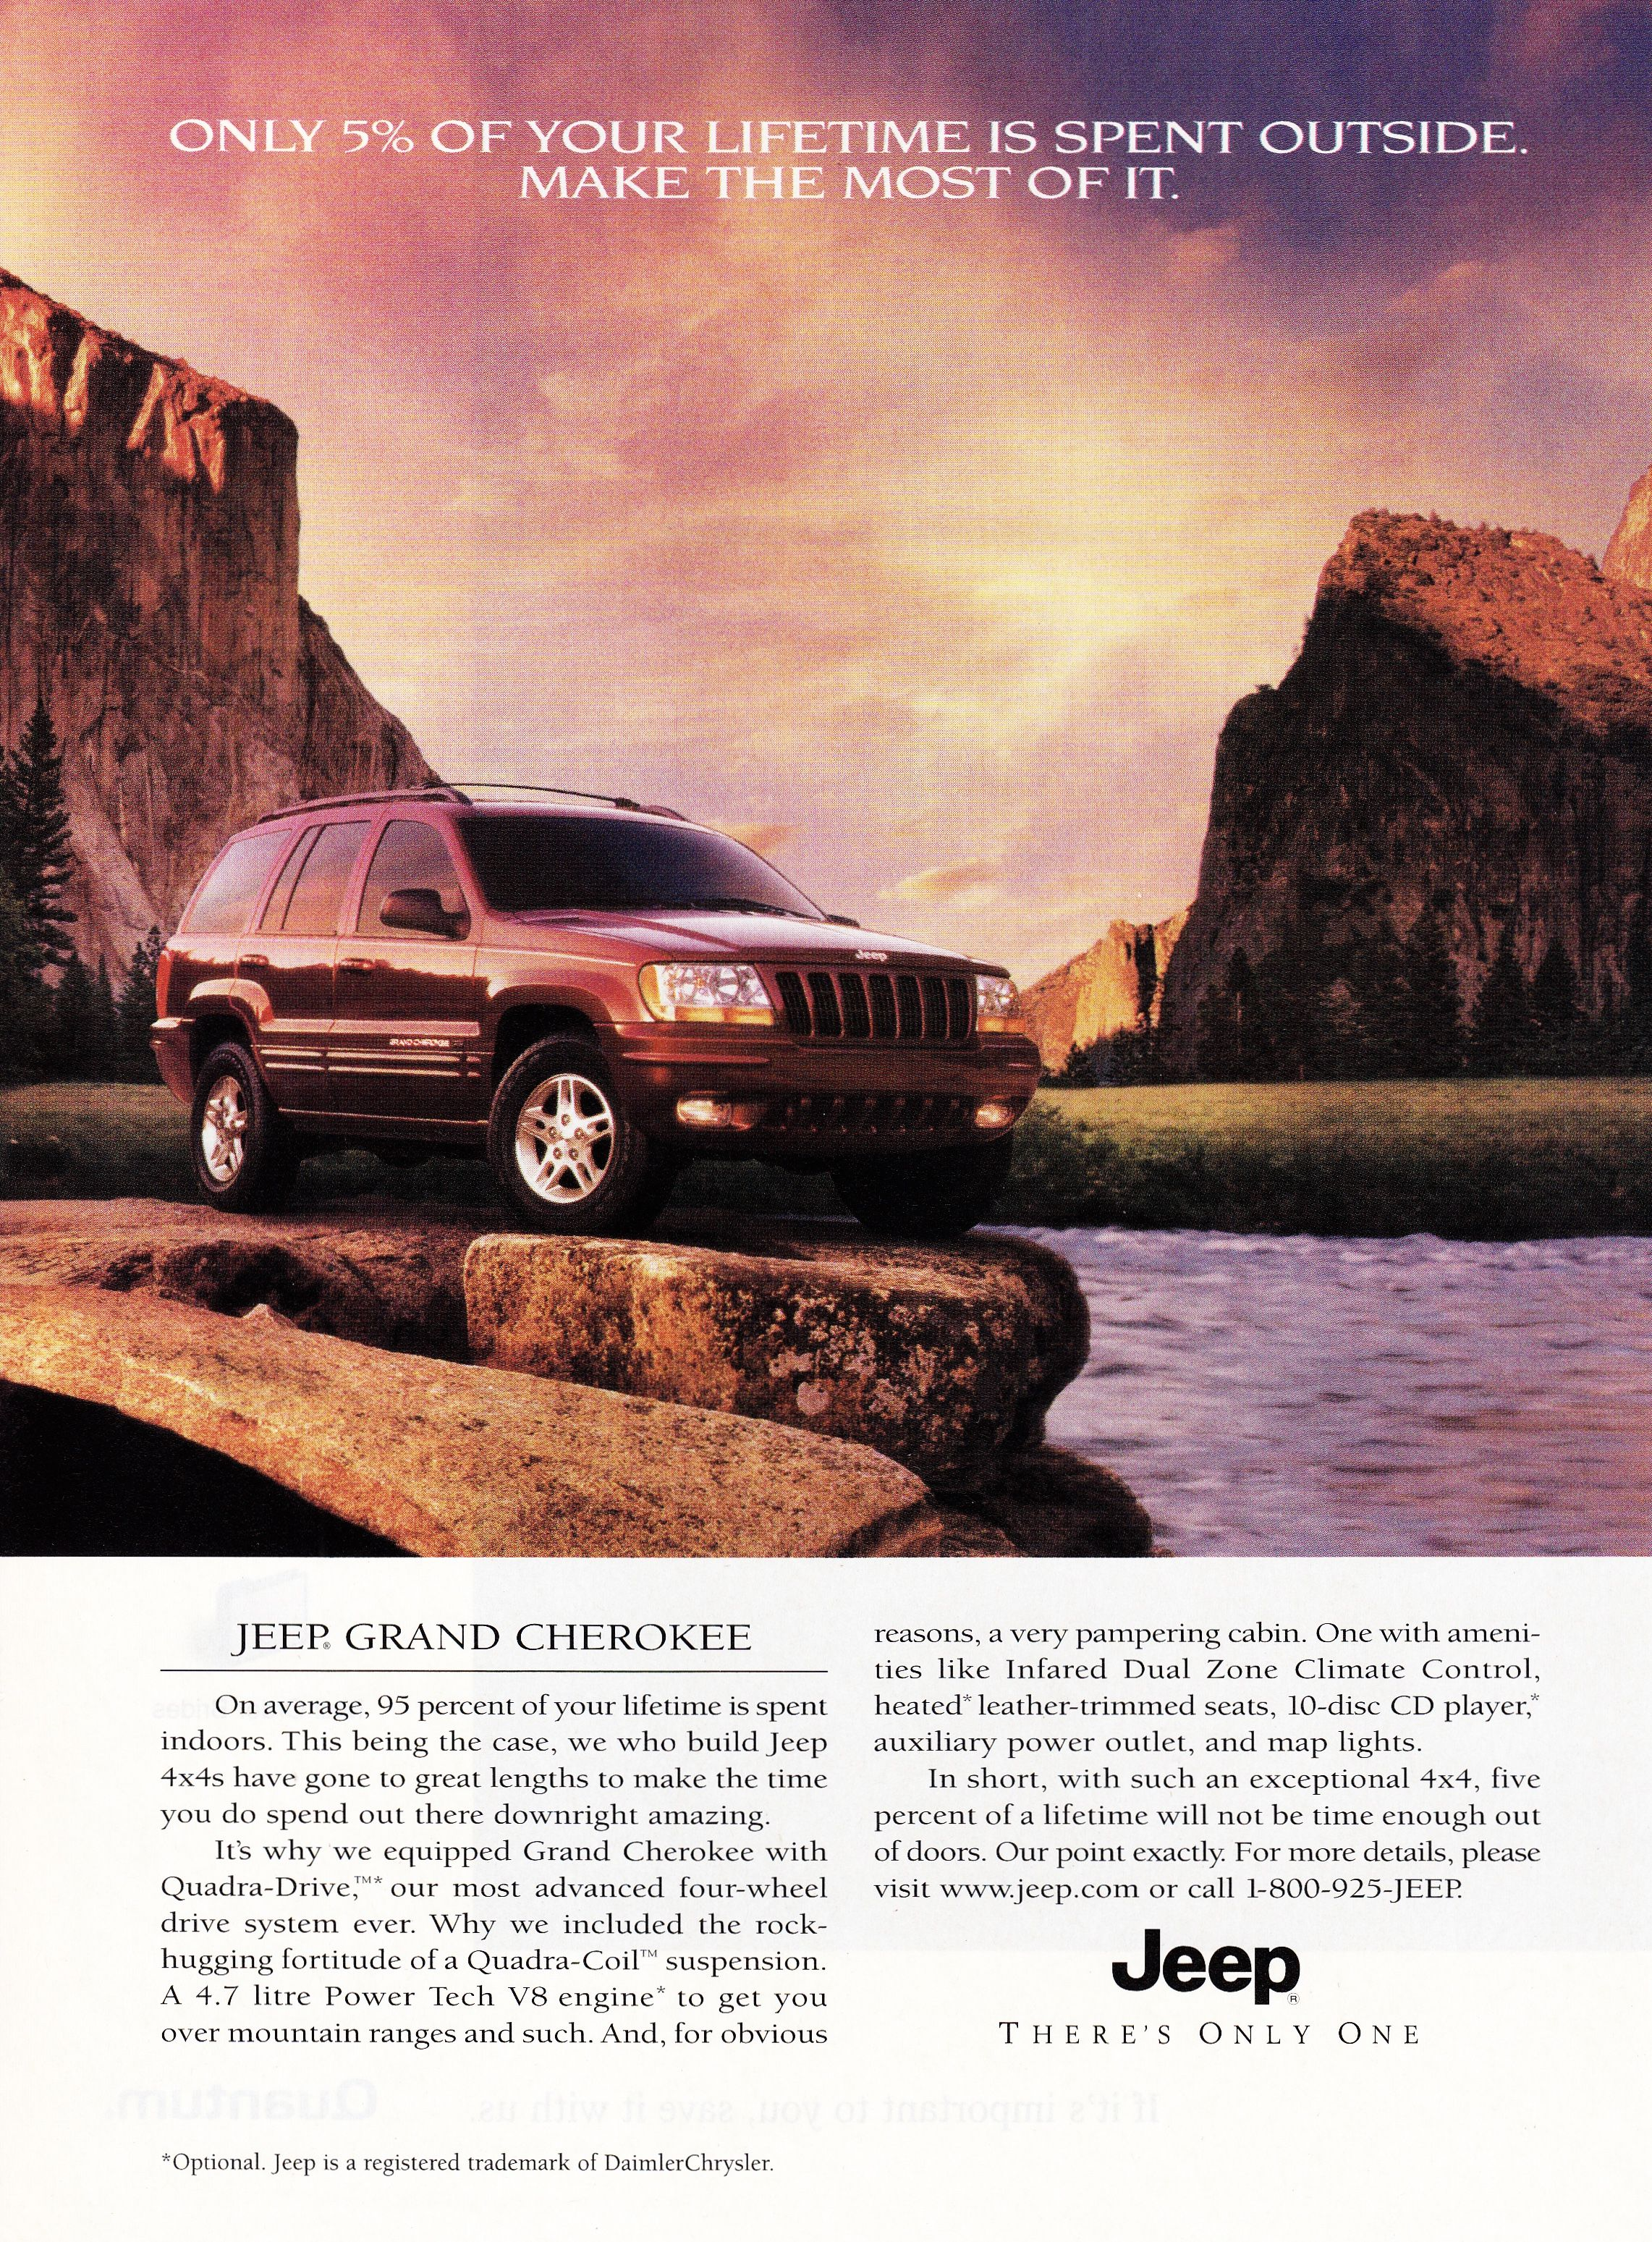 2000 Jeep Grand Cherokee Car Advertising Vintage Cars Car Ads